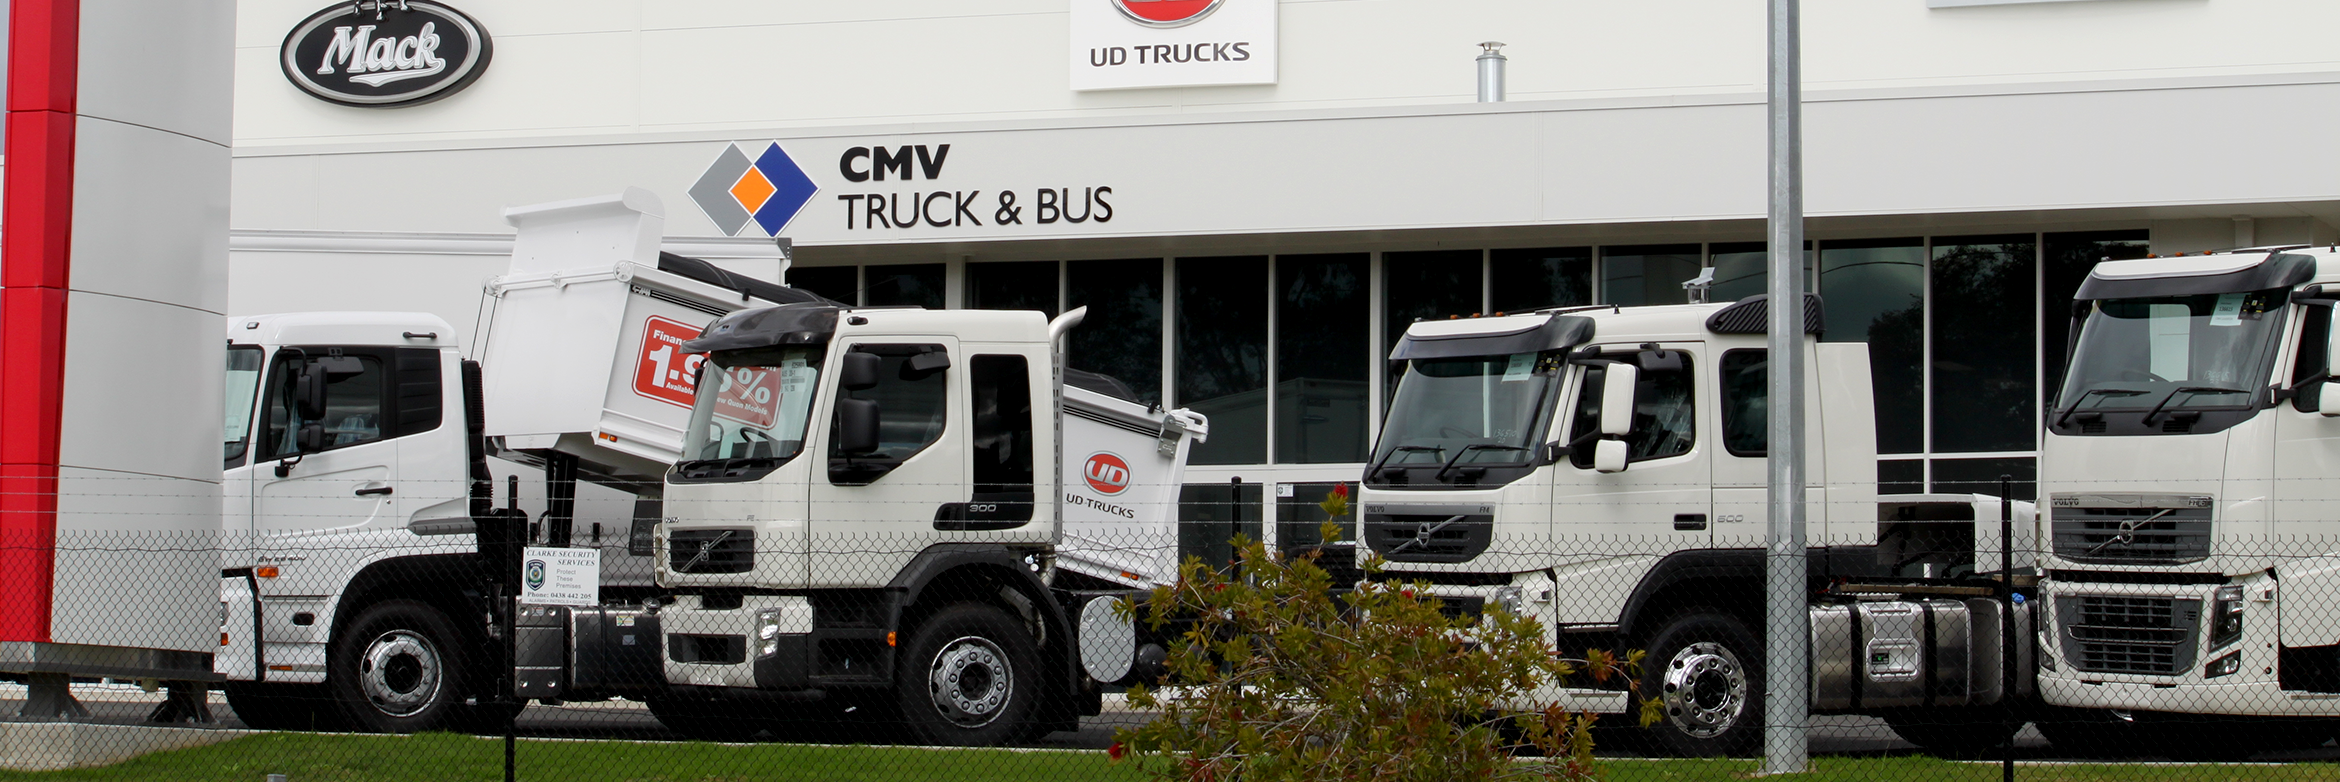 CMV Truck & Bus Albury Wodonga - CMV Group